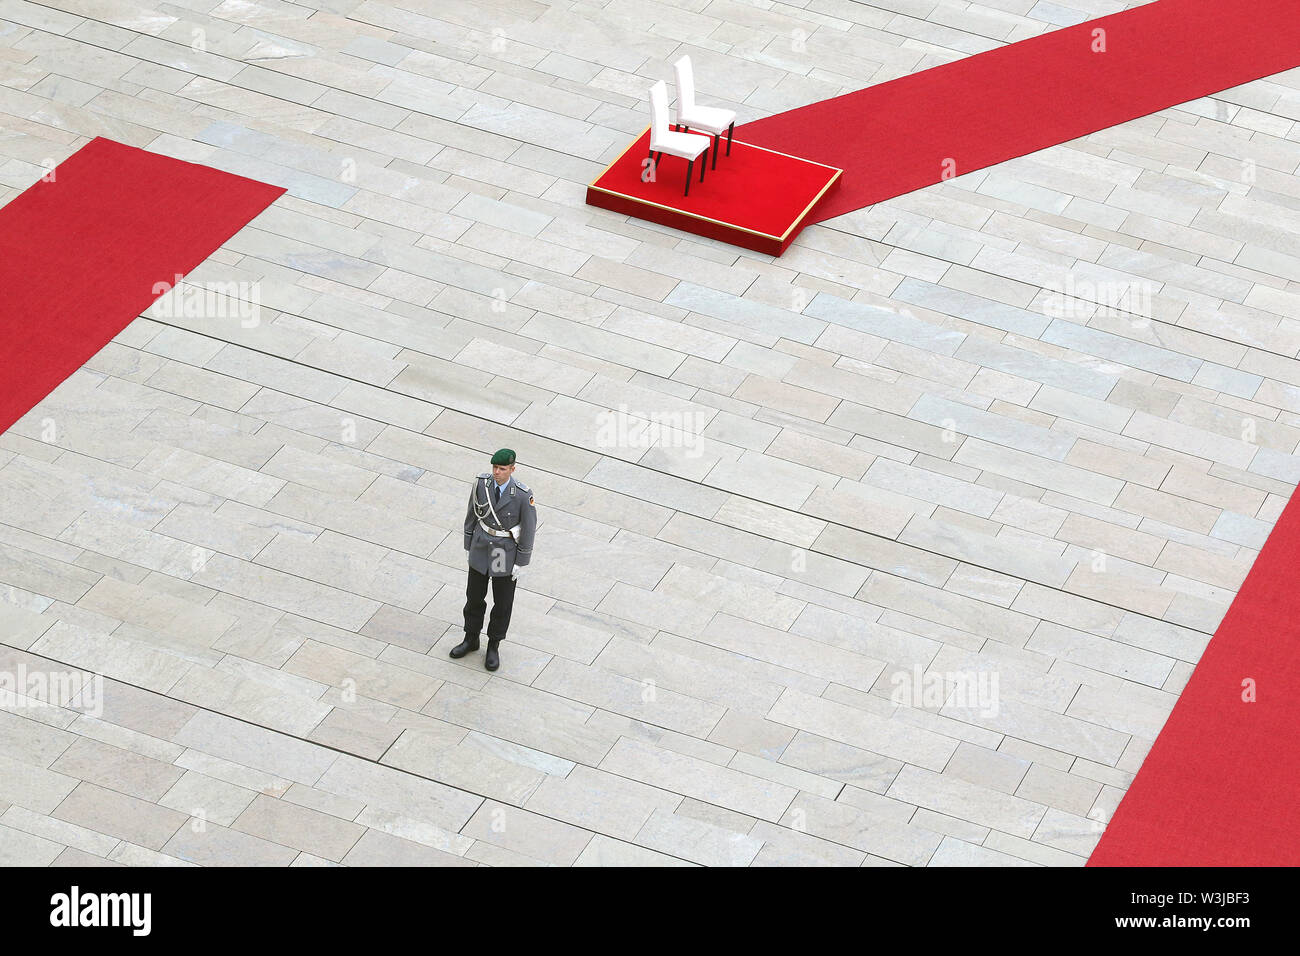 Berlin, Germany. 16th July, 2019. Chairs are available in the courtyard of honour of the Federal Chancellery, where Chancellor Merkel and the Prime Minister of Molda, Sandu, will watch the national anthems play. After several tremors during public appearances such as this, Merkel performed the ceremony for the first time last week, partly sitting down. Credit: Wolfgang Kumm/dpa/Alamy Live News - Stock Image